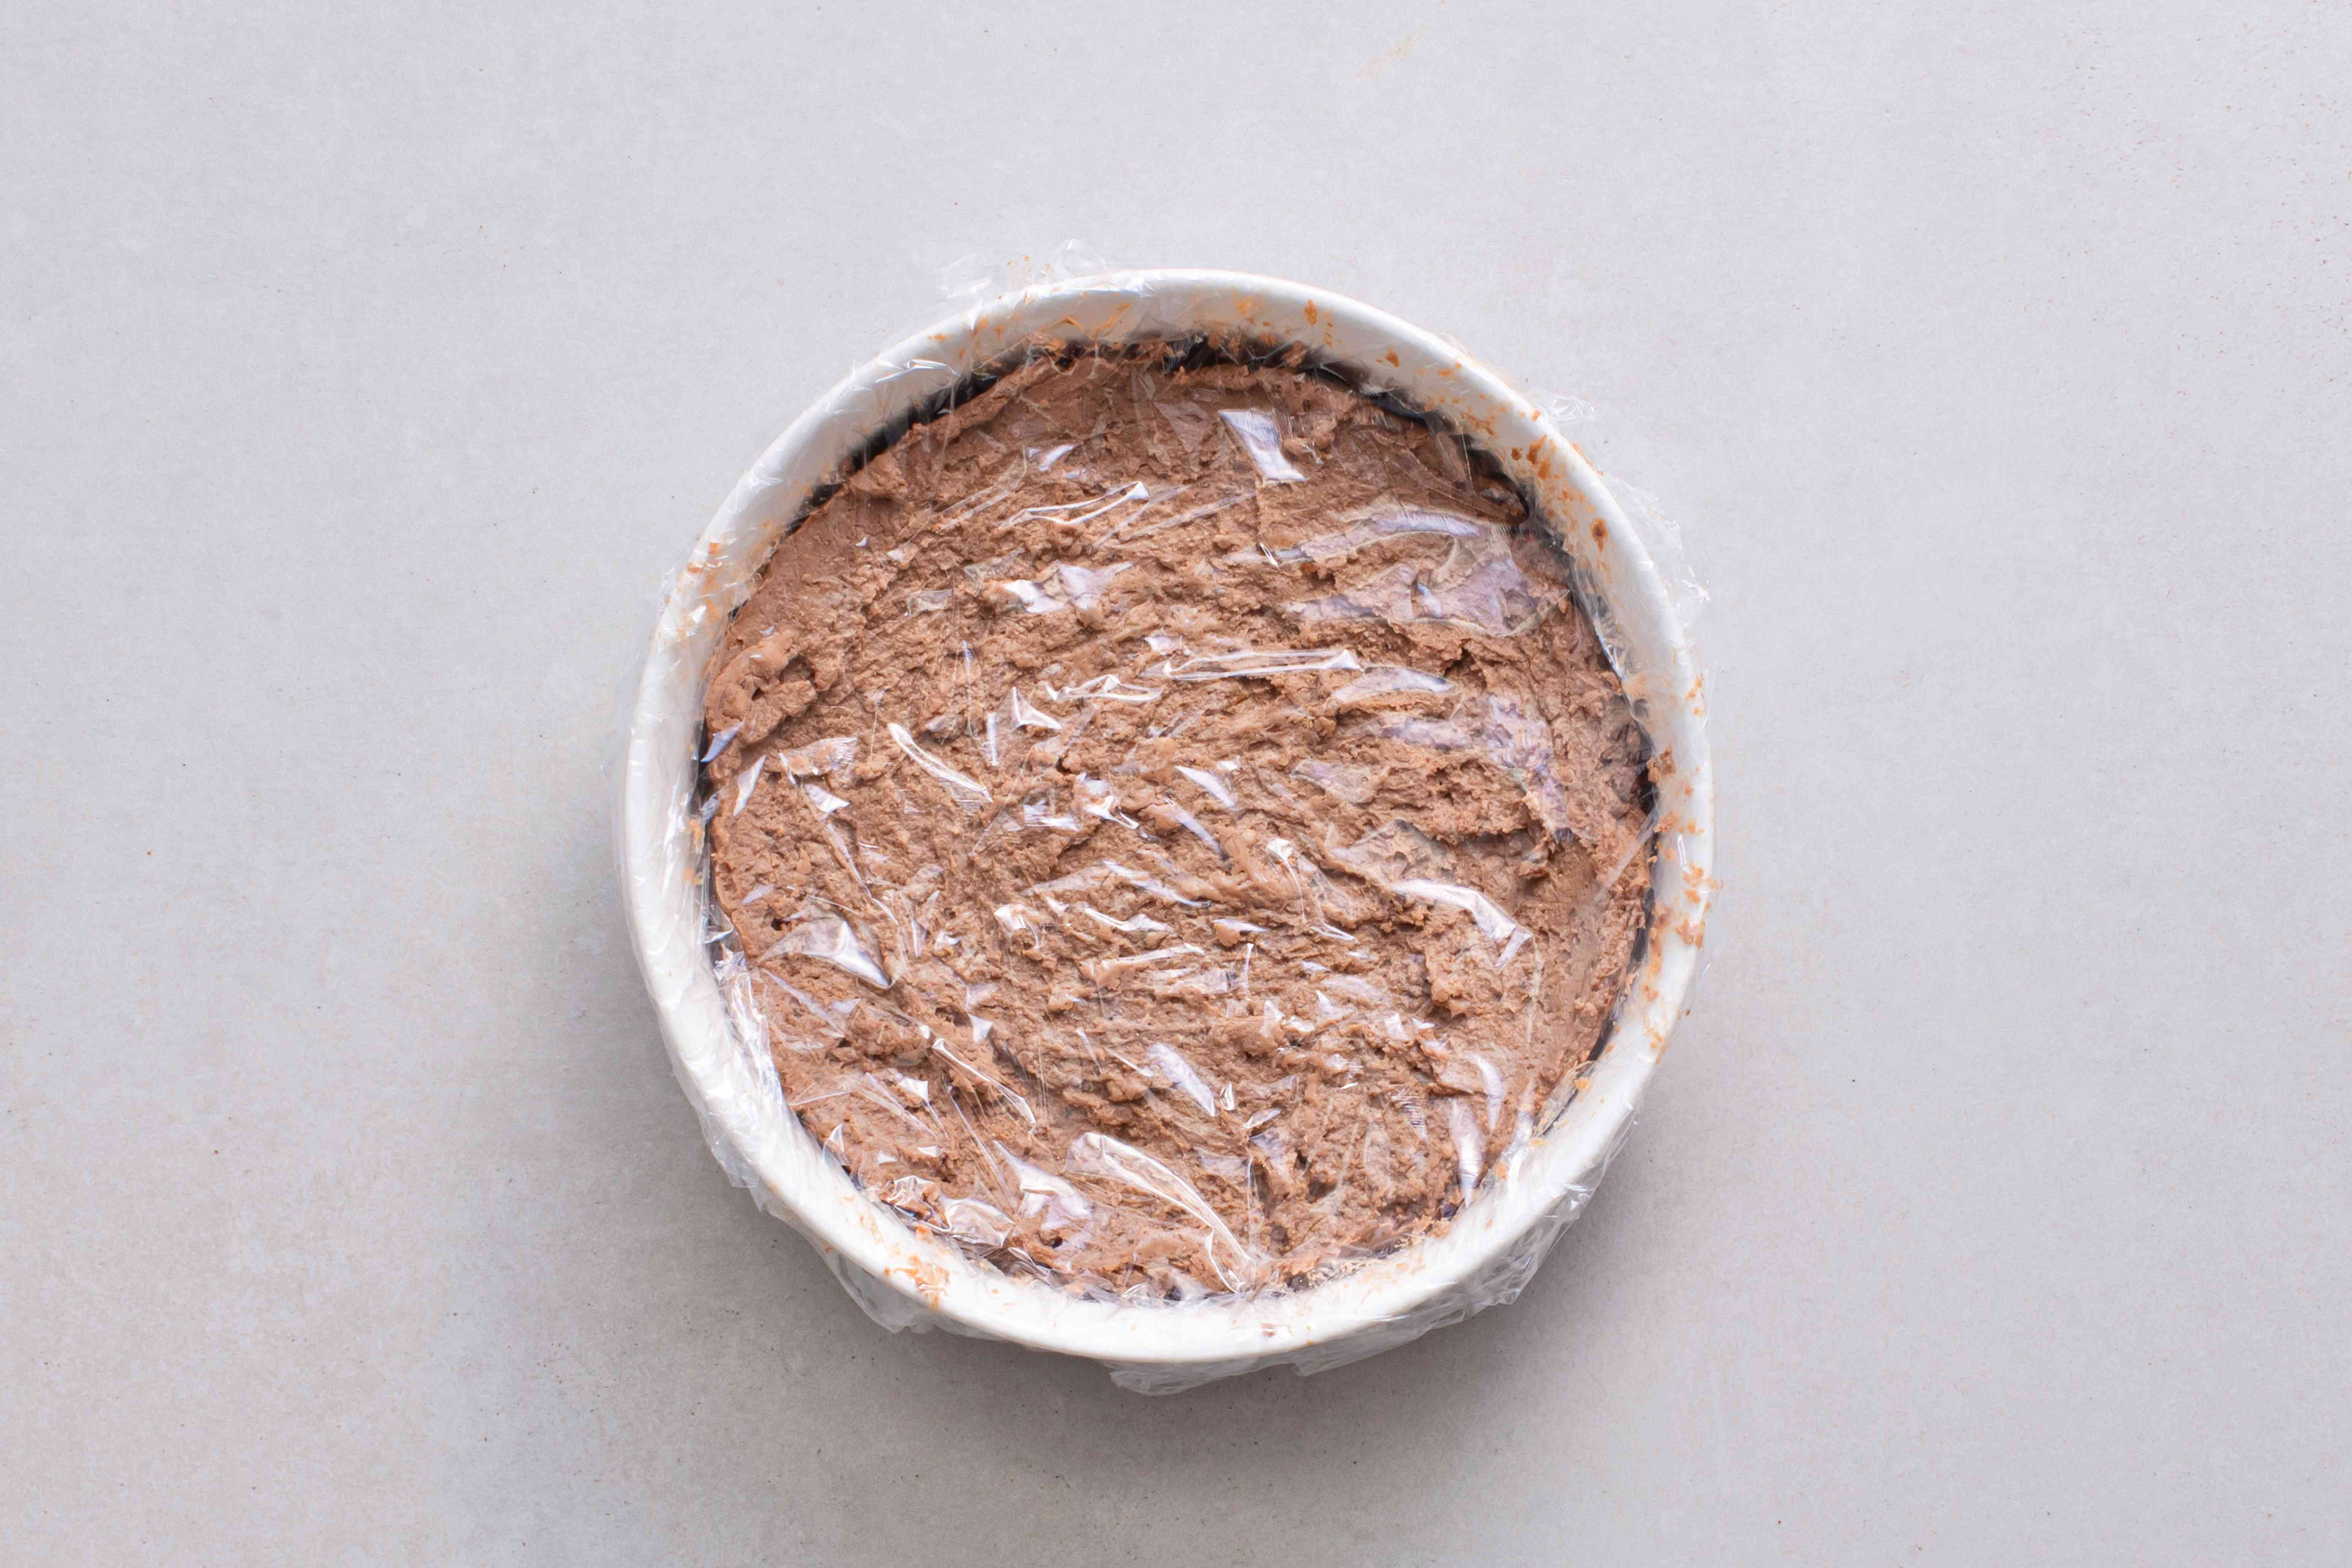 pate in a bowl, covered with plastic wrap